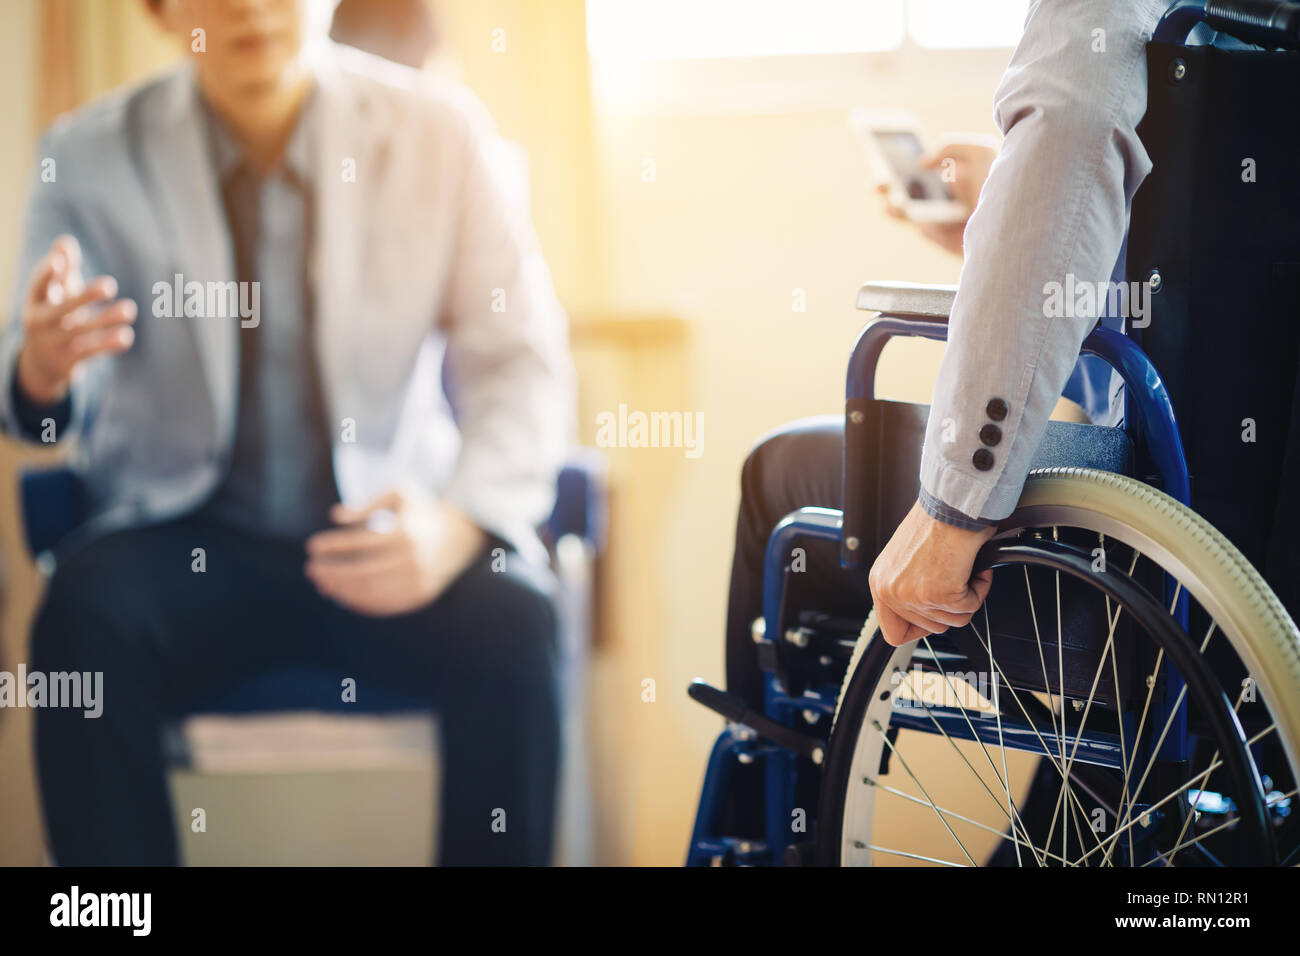 After car accident and rehabilitation, a businessman can return to work again. - Stock Image